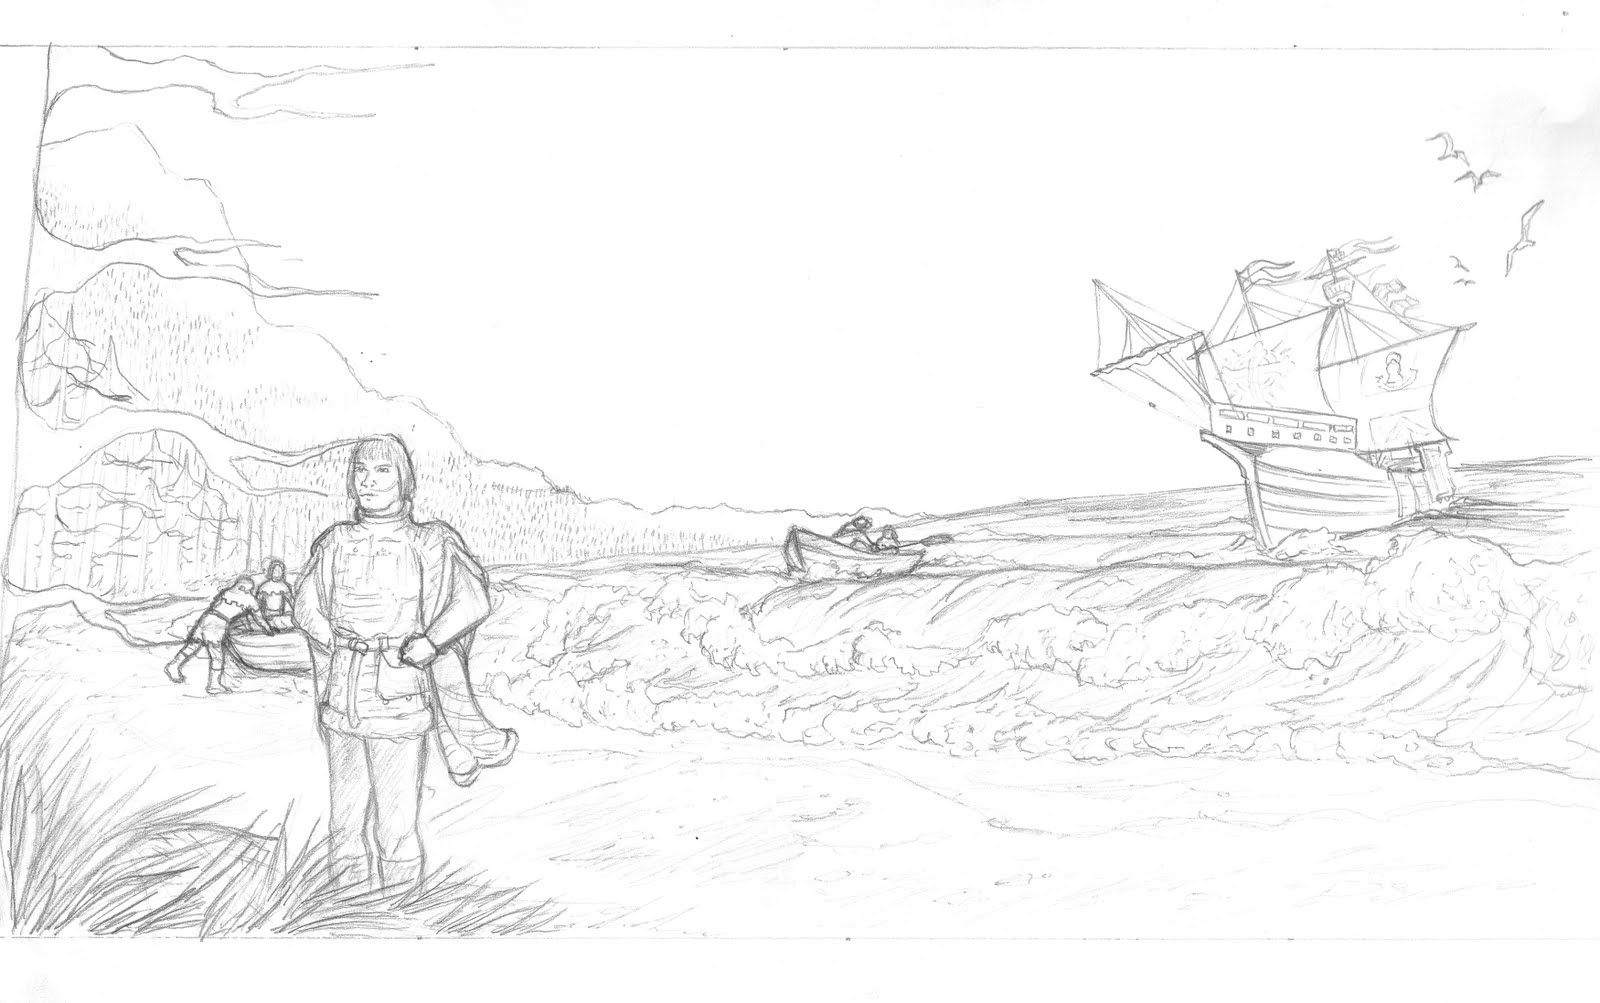 john cabot coloring pages - photo#27